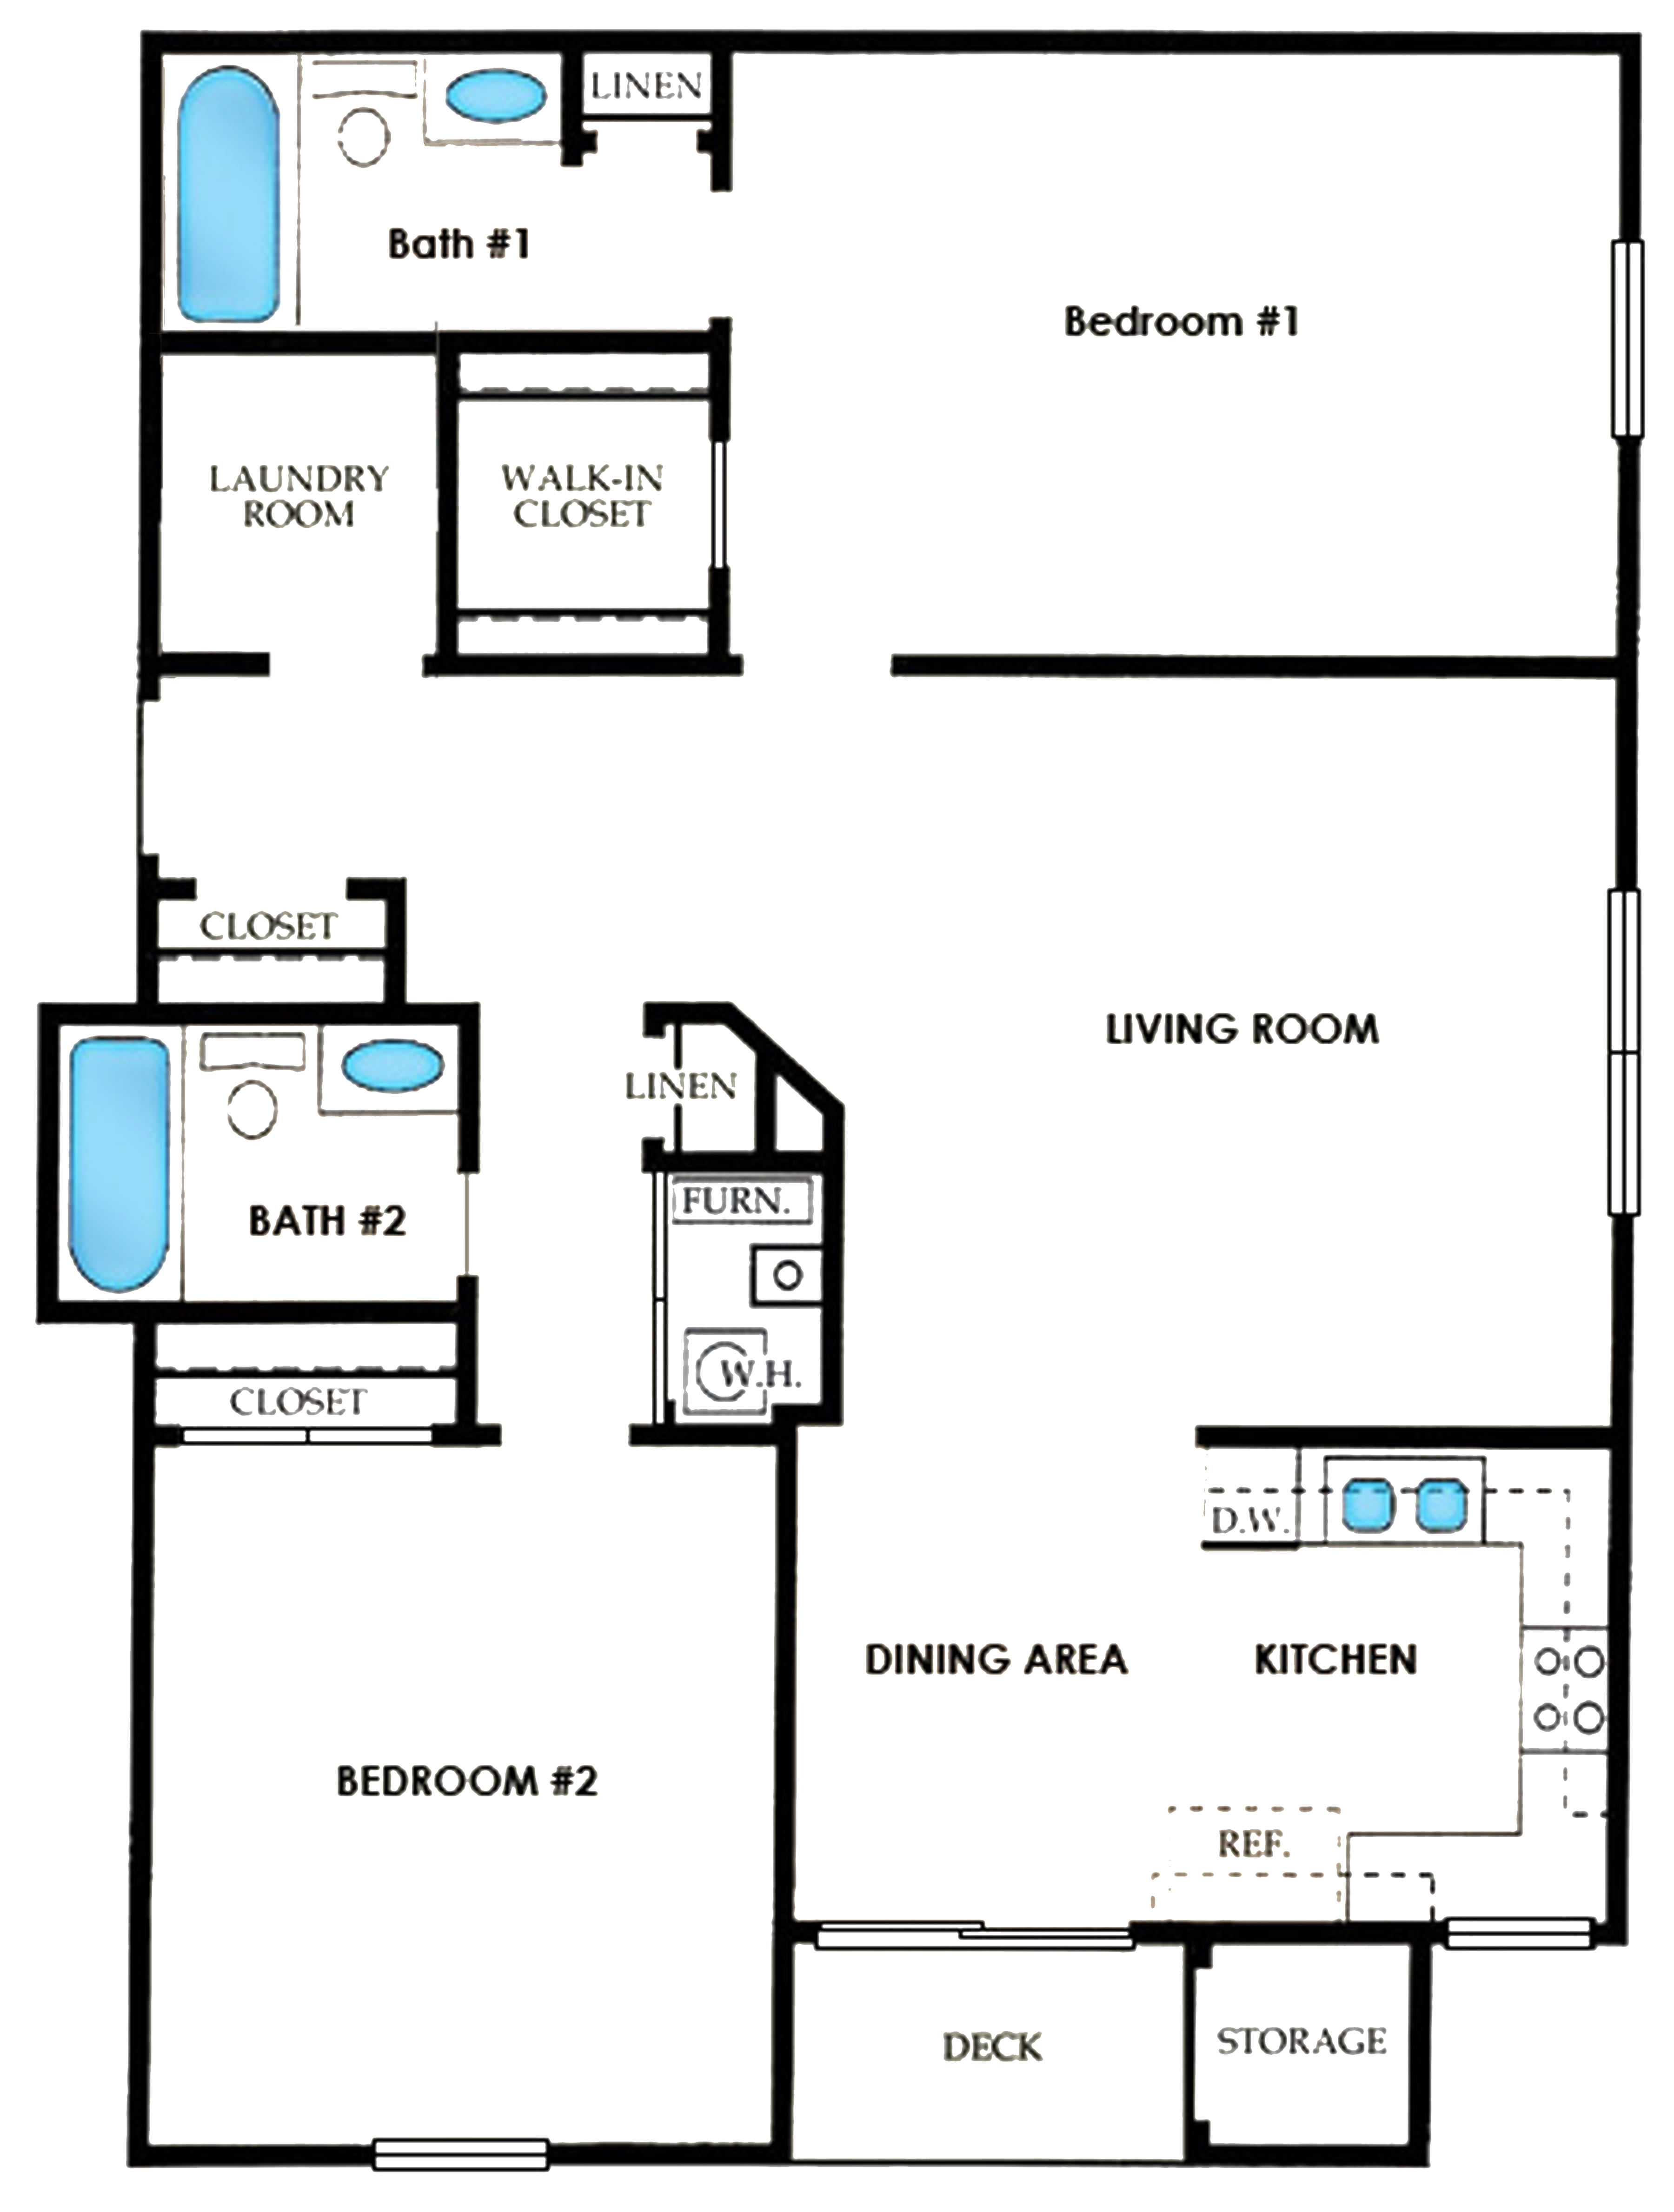 Here's the floor plan for the condo!